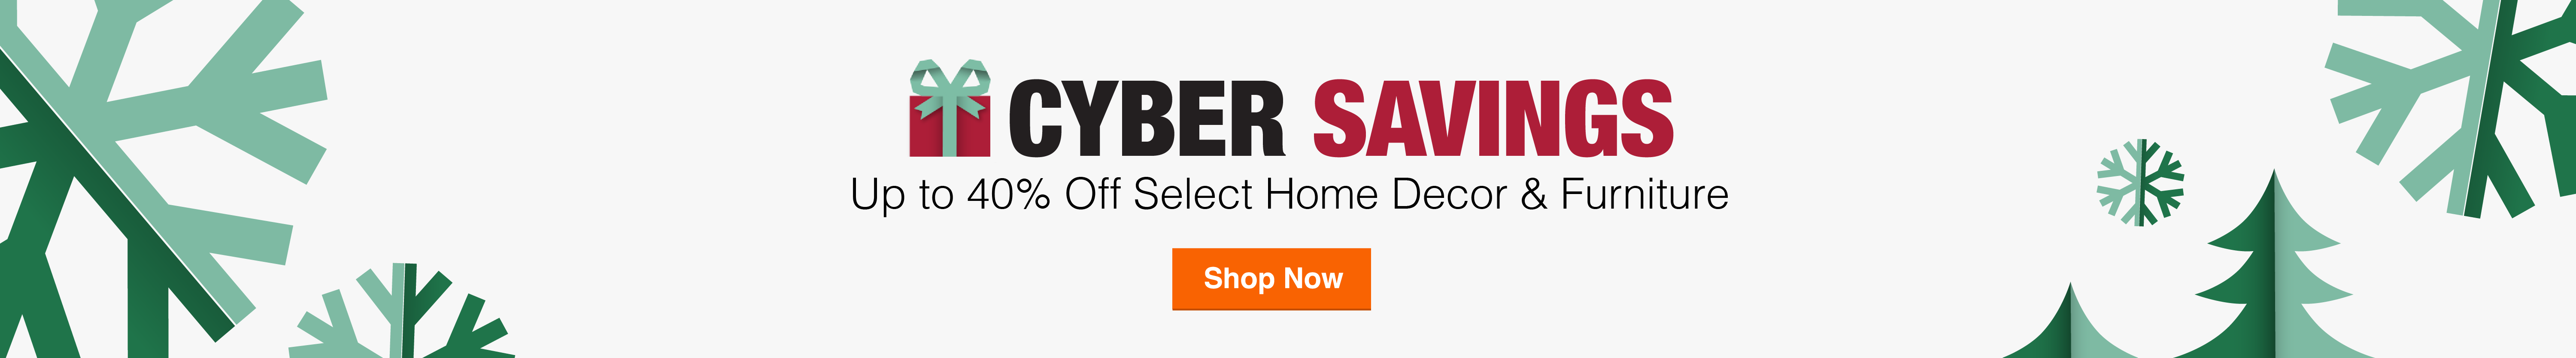 Cyber Week Savings - Up to 40% Off Select Home Decor & Furniture